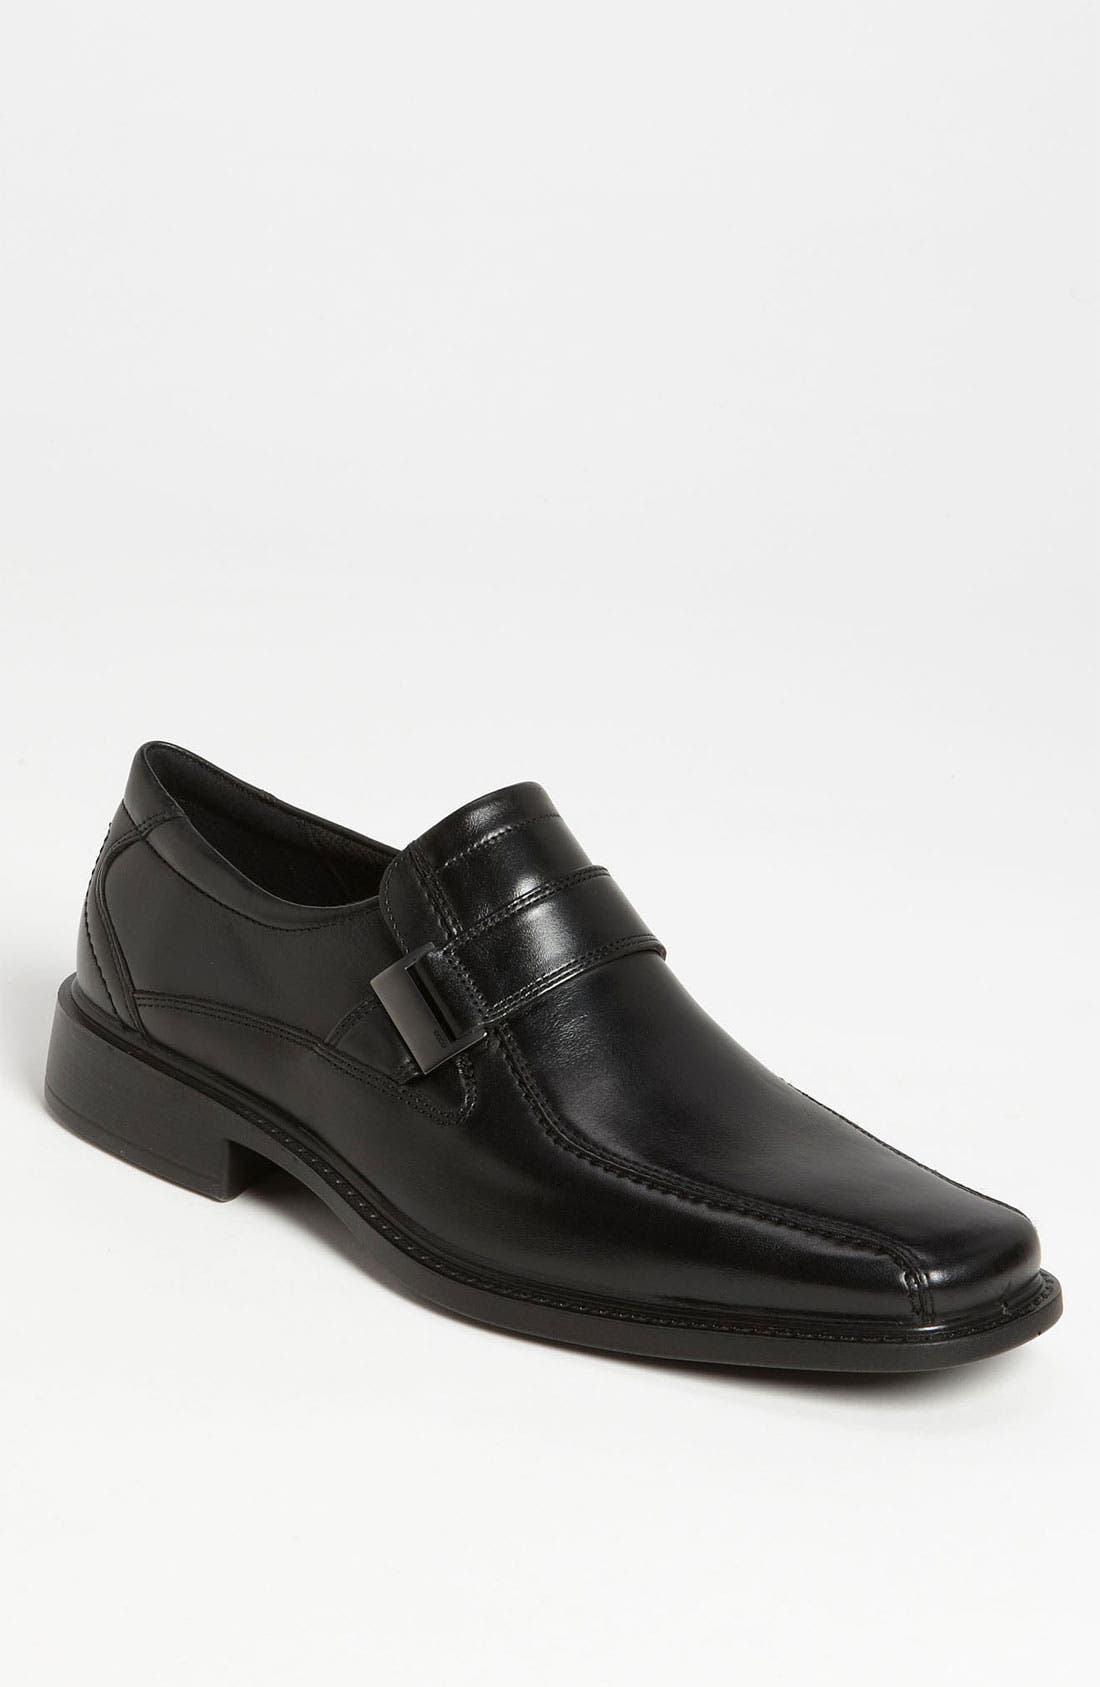 'New Jersey' Venetian Loafer,                         Main,                         color,